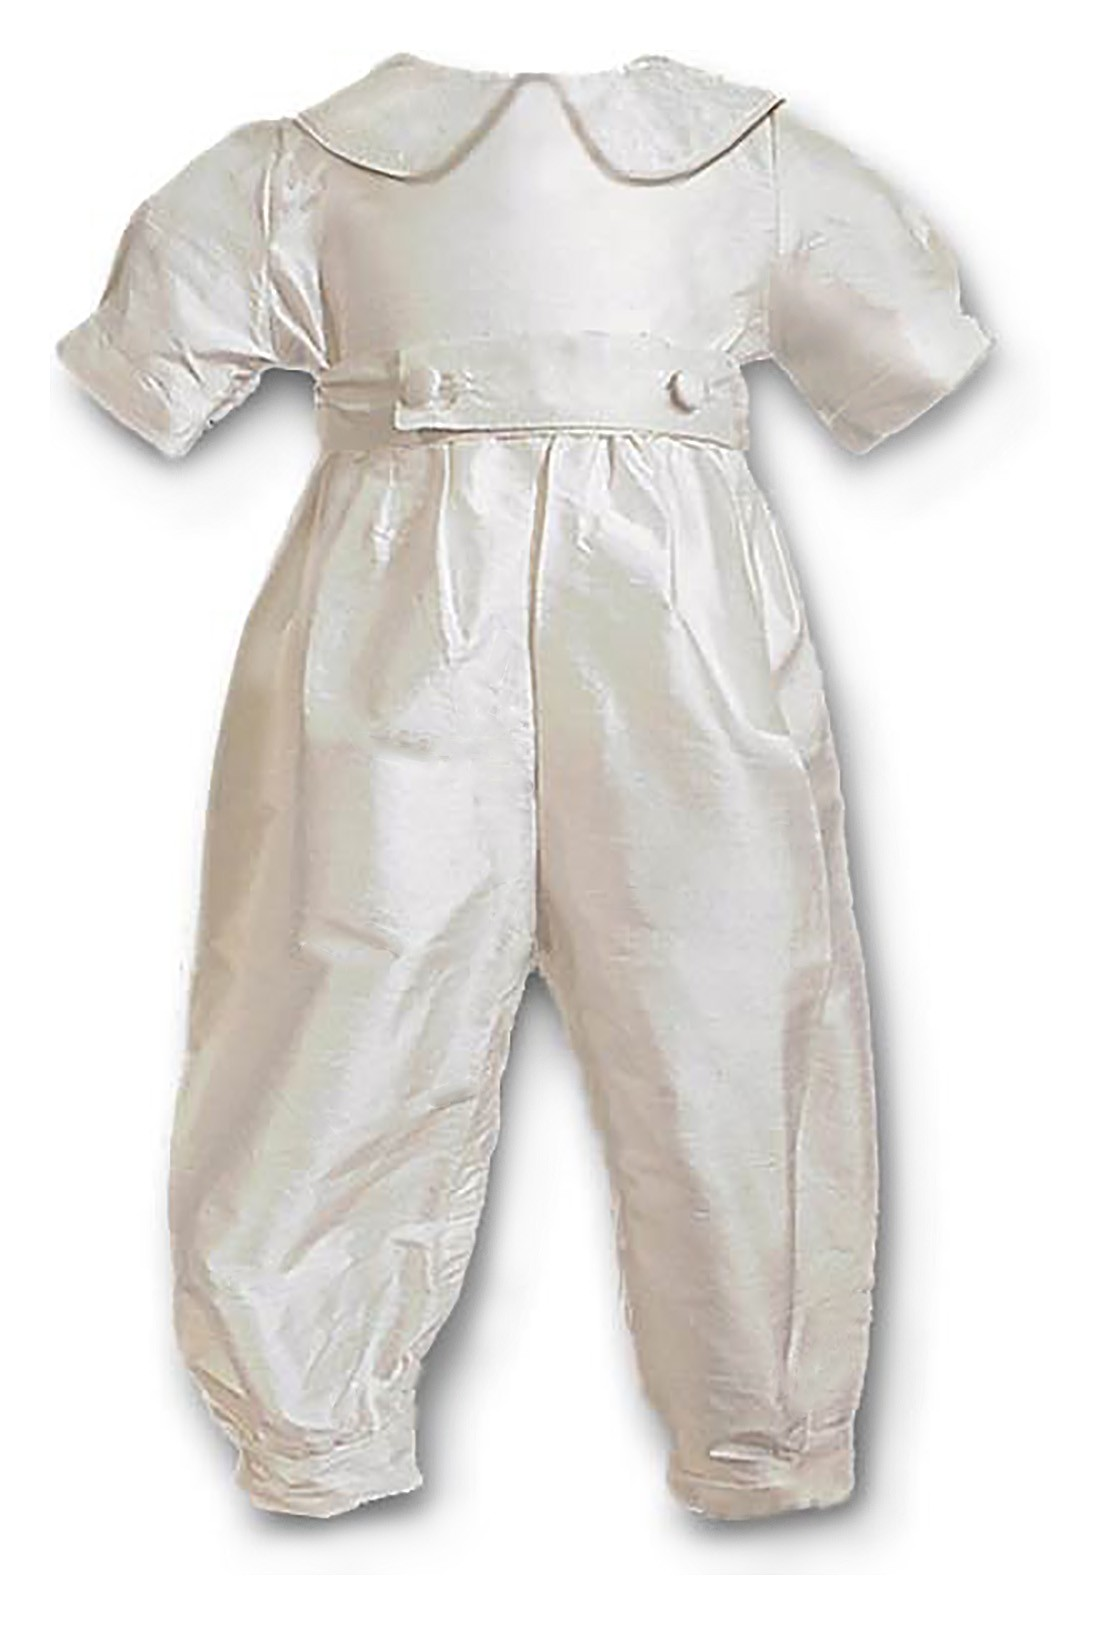 Geremia baby outfit for Christening and special occasions